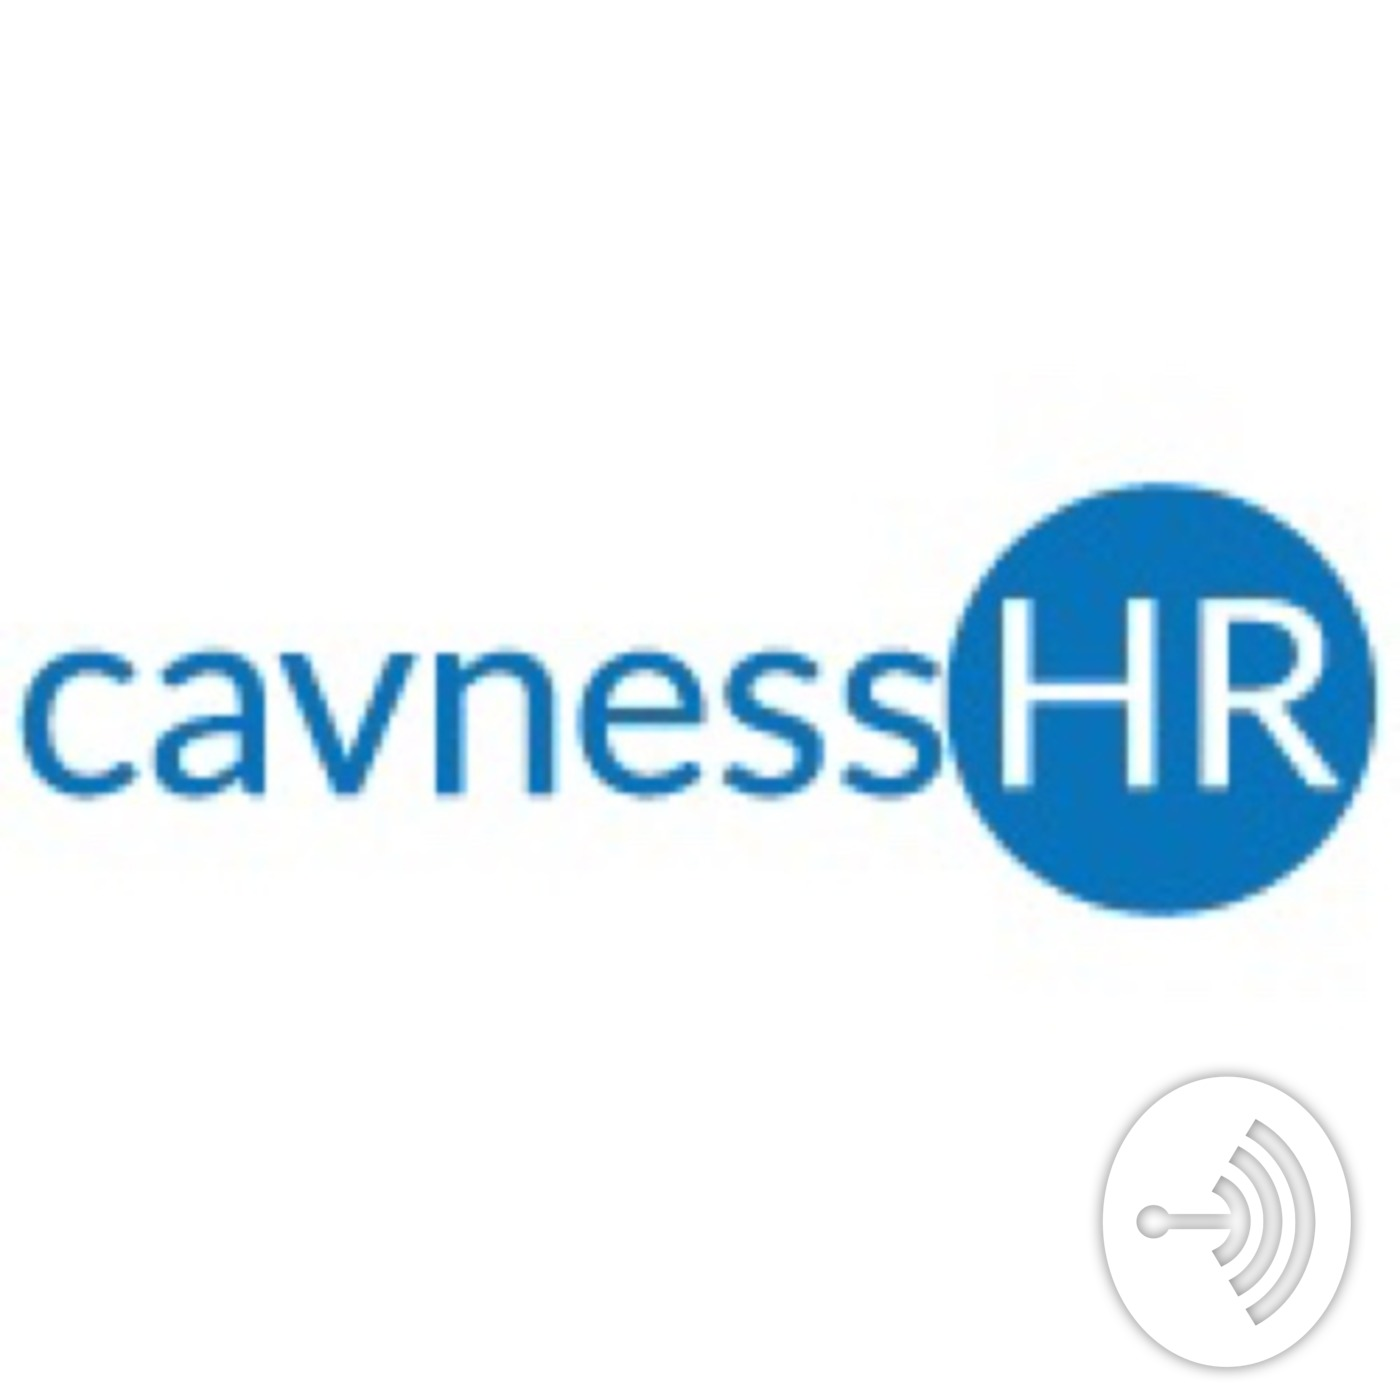 The cavnessHR Podcast - A talk with Steve Browne